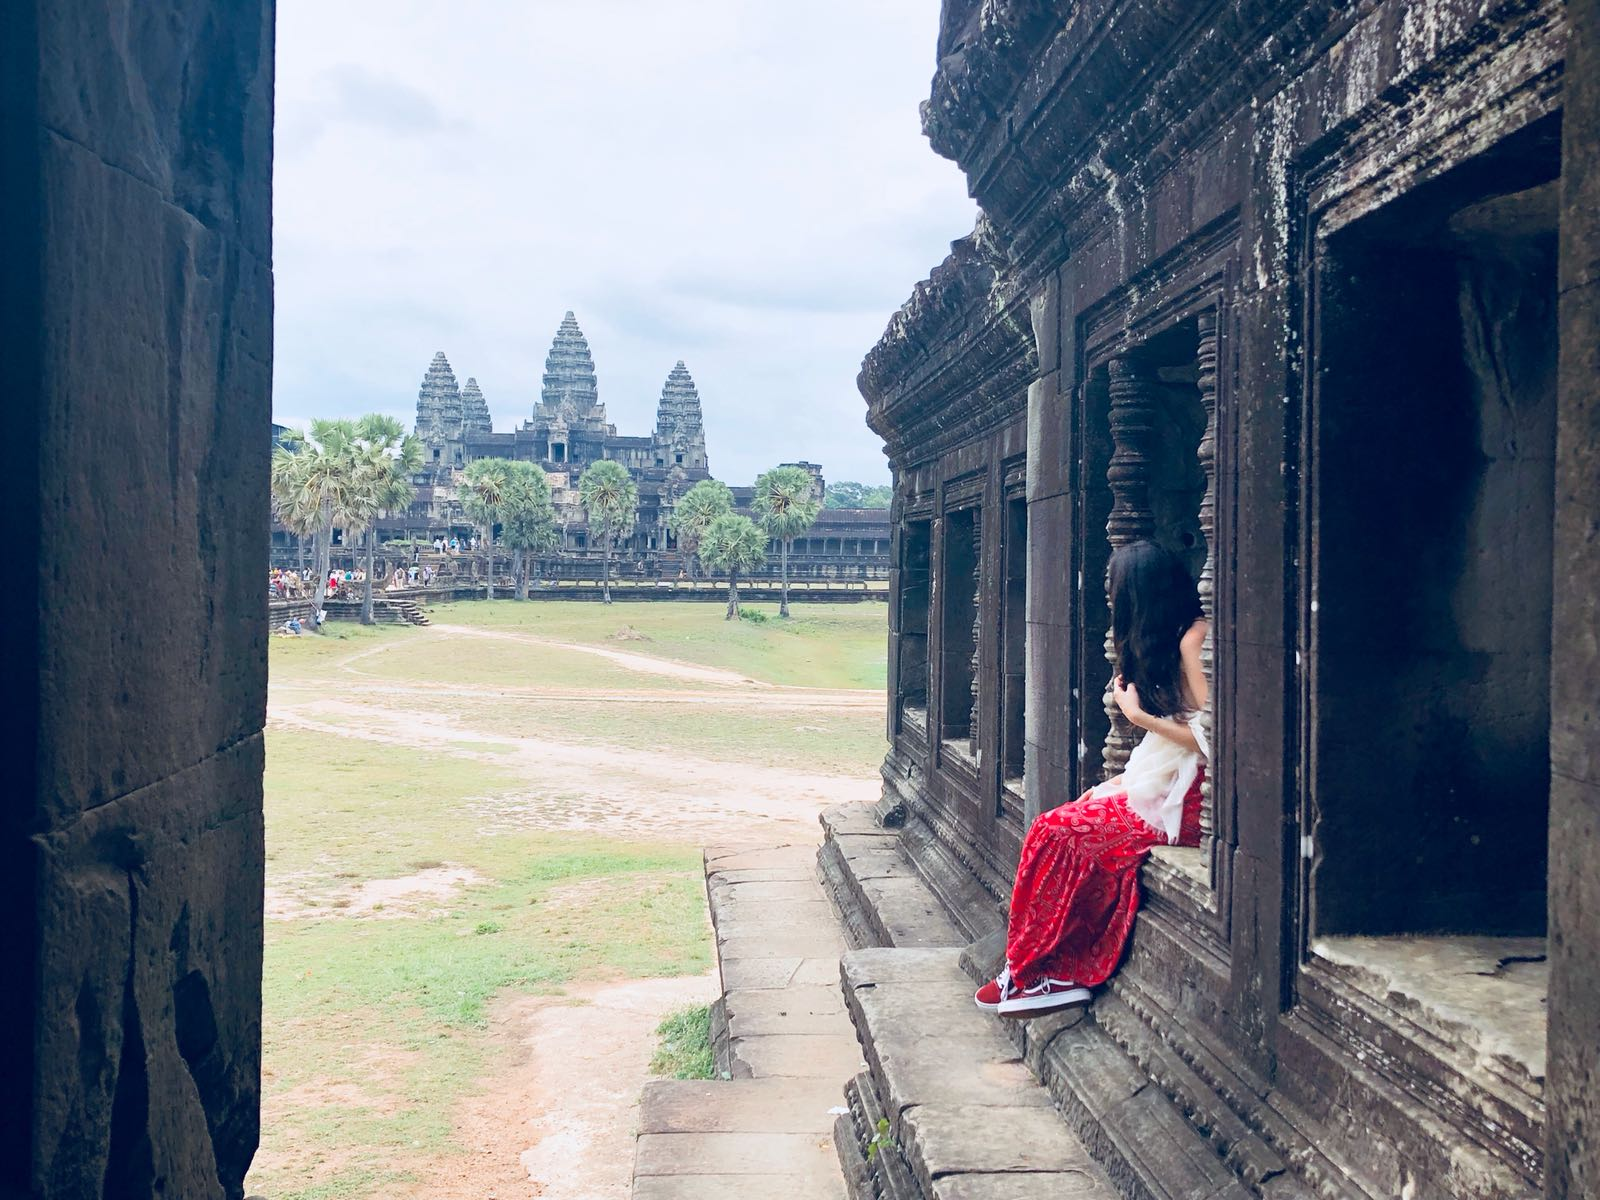 Every year, more than 1 million tourists head to Siem Reap to visit the UNESCO World Heritage site of Angkor